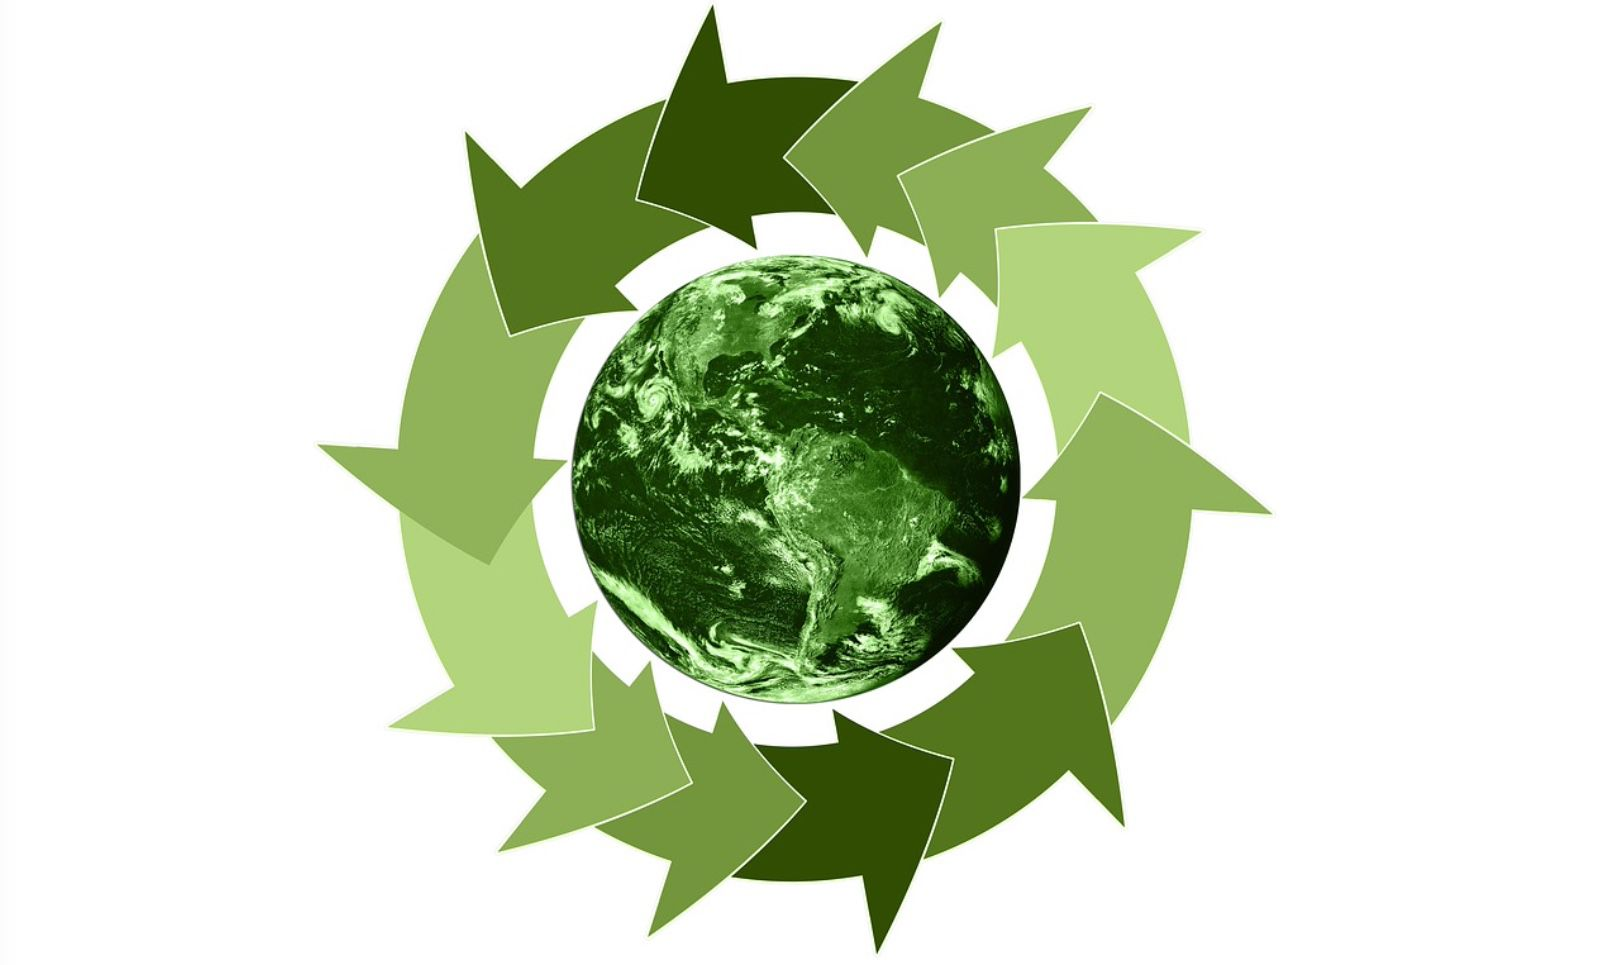 Dow Commits to Develop Cracking Technology Powered by Clean Energy - Environment + Energy Leader